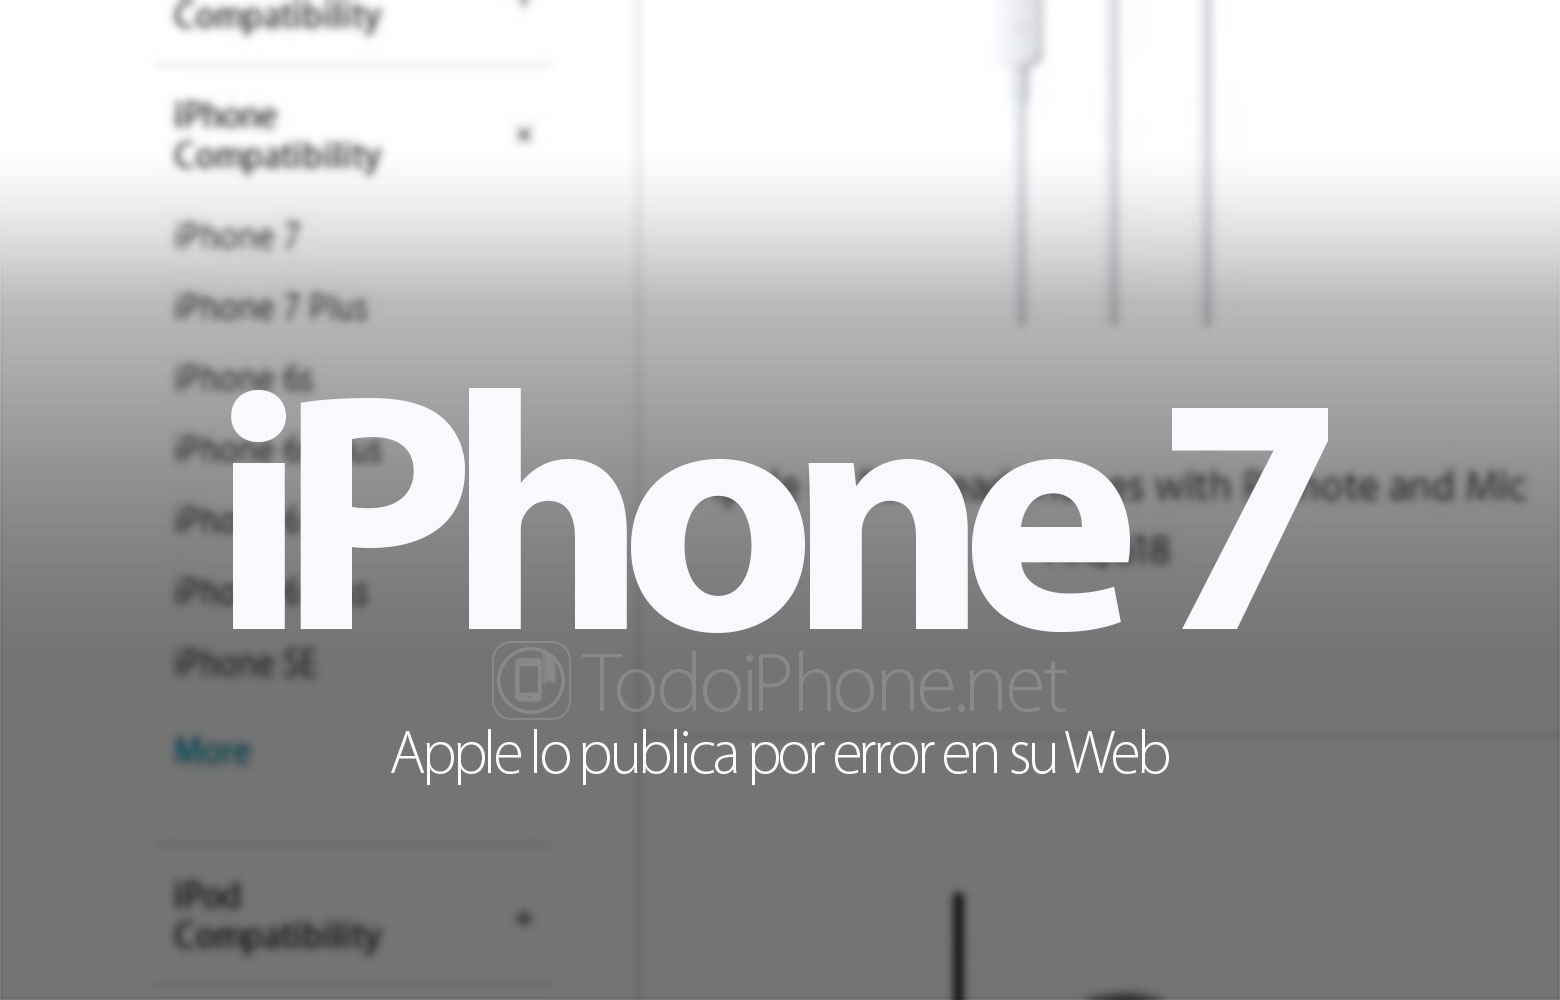 apple-publica-nuevoa-iphone-7-error